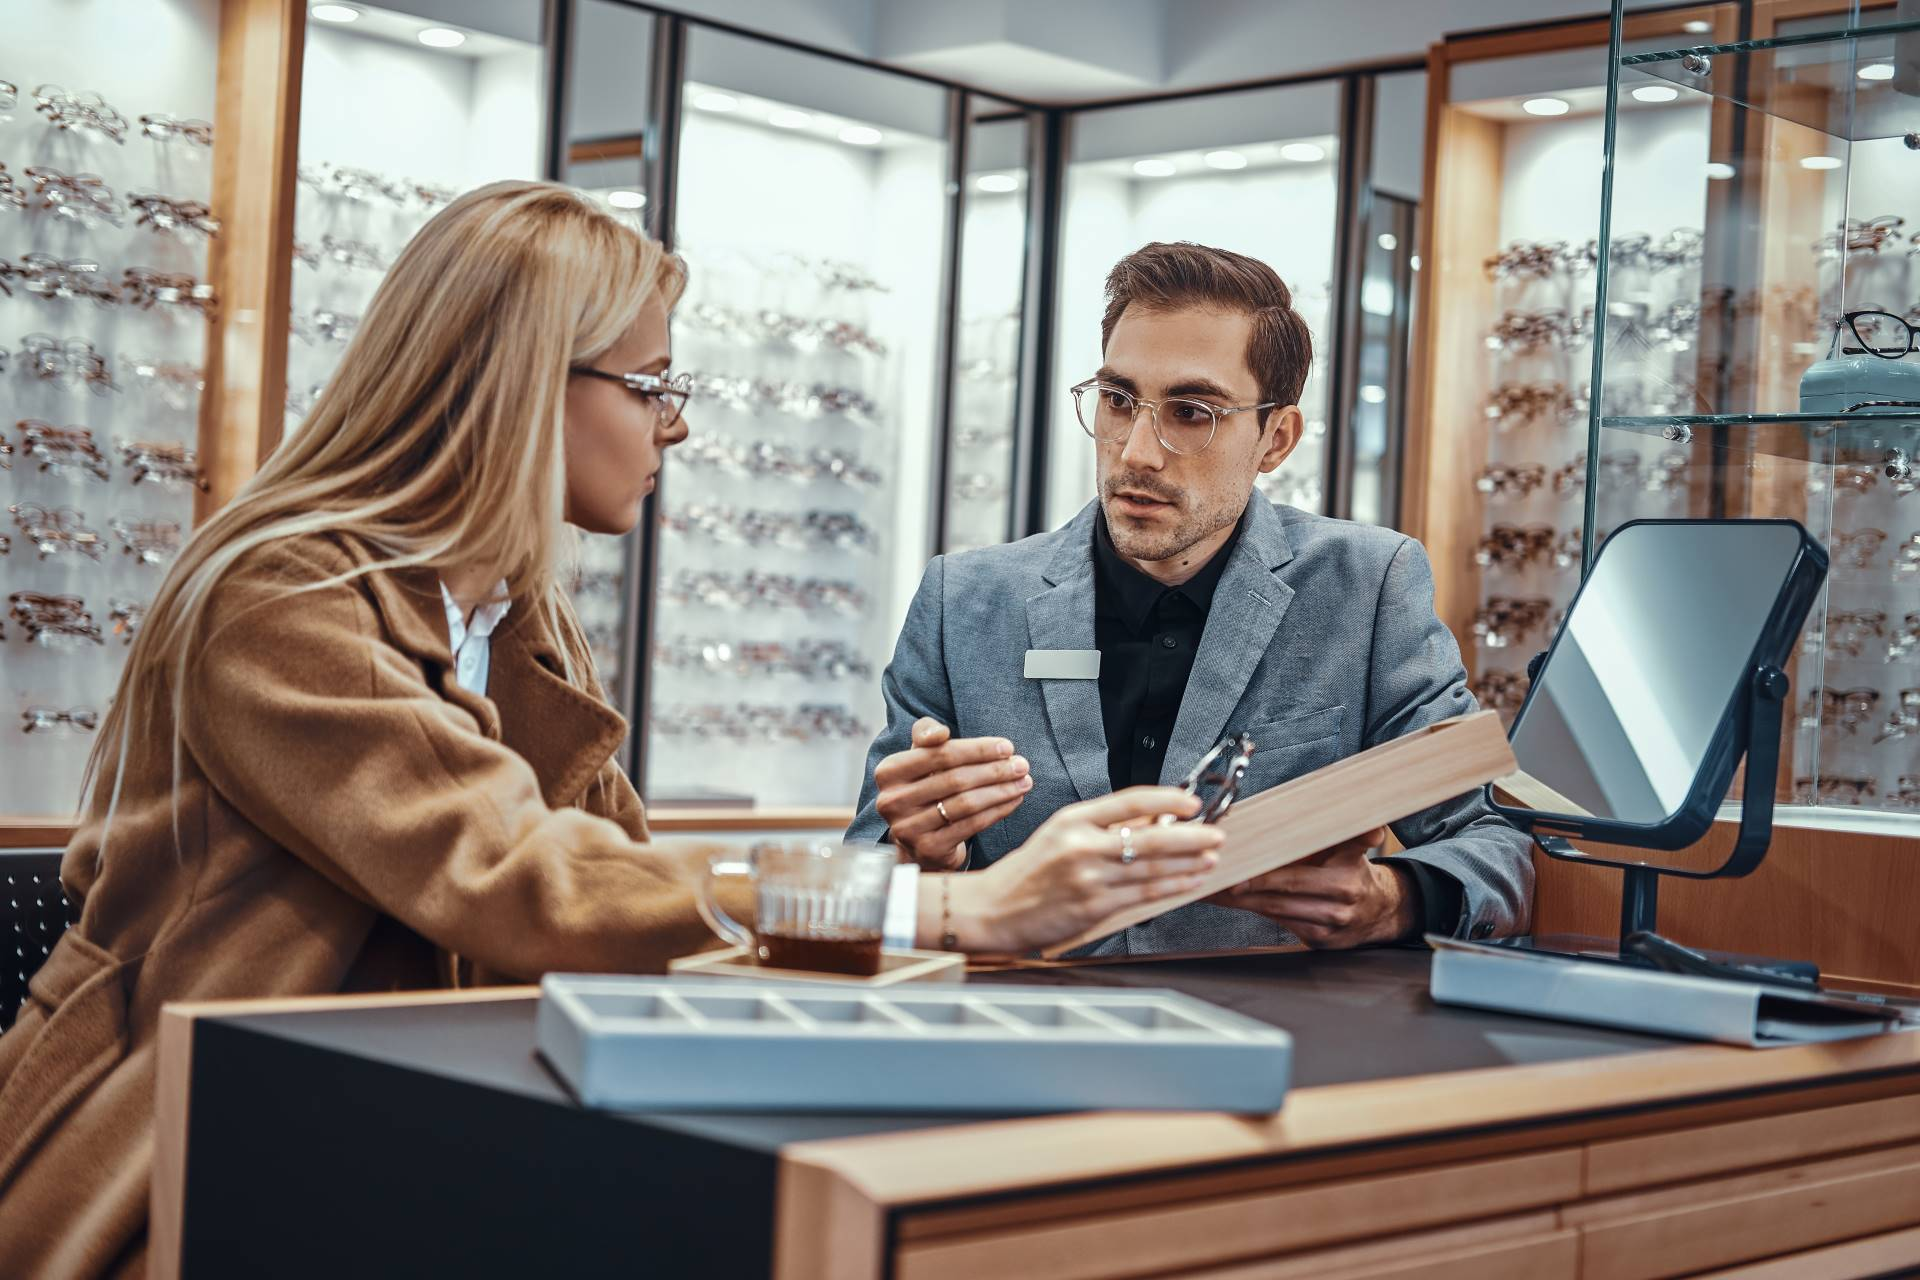 Woman at Glasses Consult